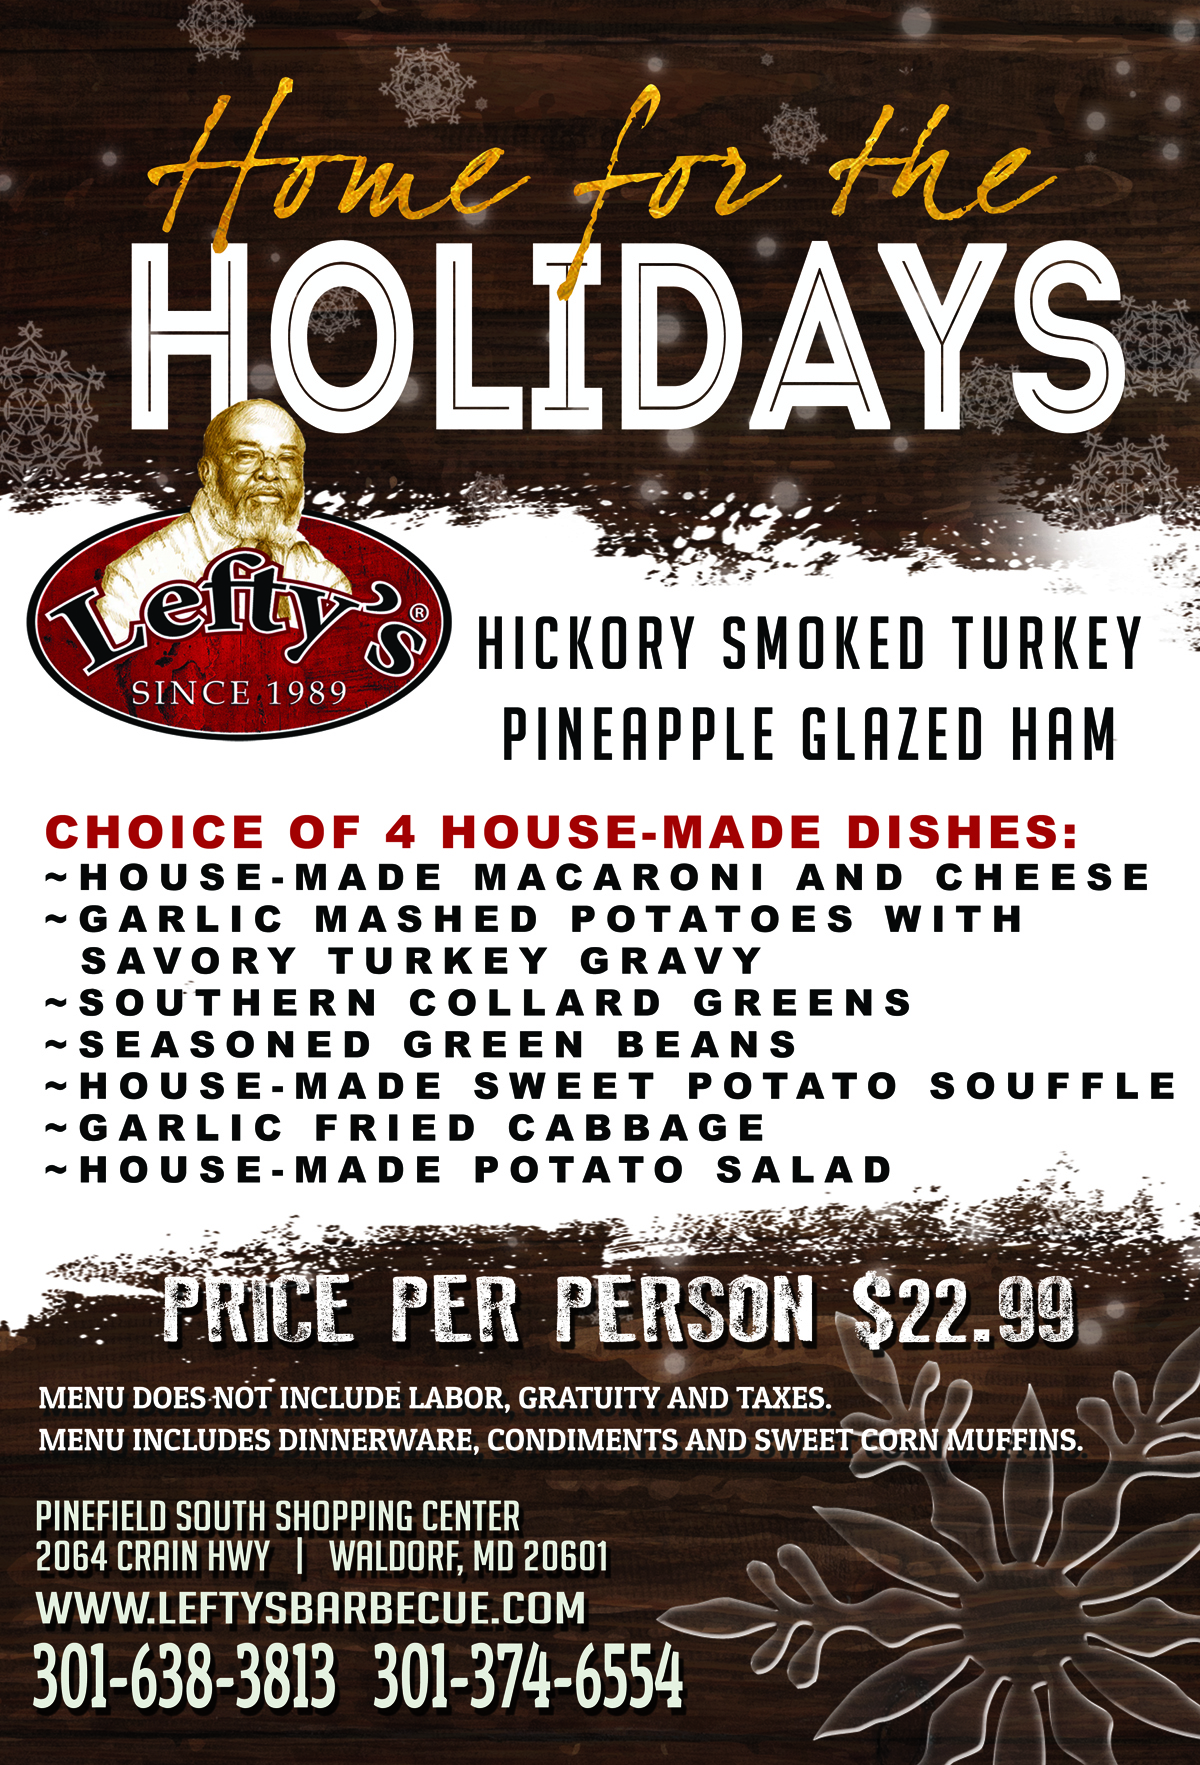 Home for the holidays. Hickory smoked turkey, pineapple glazed ham. Choice of 4 house-made dishes: house made macaroni and cheese, garlic mashed potatoes with savory turkey gravy, southern  collard greens, seasoned green beans, house made sweet potato souffle, garlic fried cabbage, house made potato salad. Price per person - $22.99. Menu does not include labor, gratuity and taxes. Menu includes dinnerware, condiments and sweet corn muffins. Pinefield south shopping center. 2064 crain hwy. walforf, md 20601. www.leftysbarbecue.com. 301-638-3813. 301-374-6554